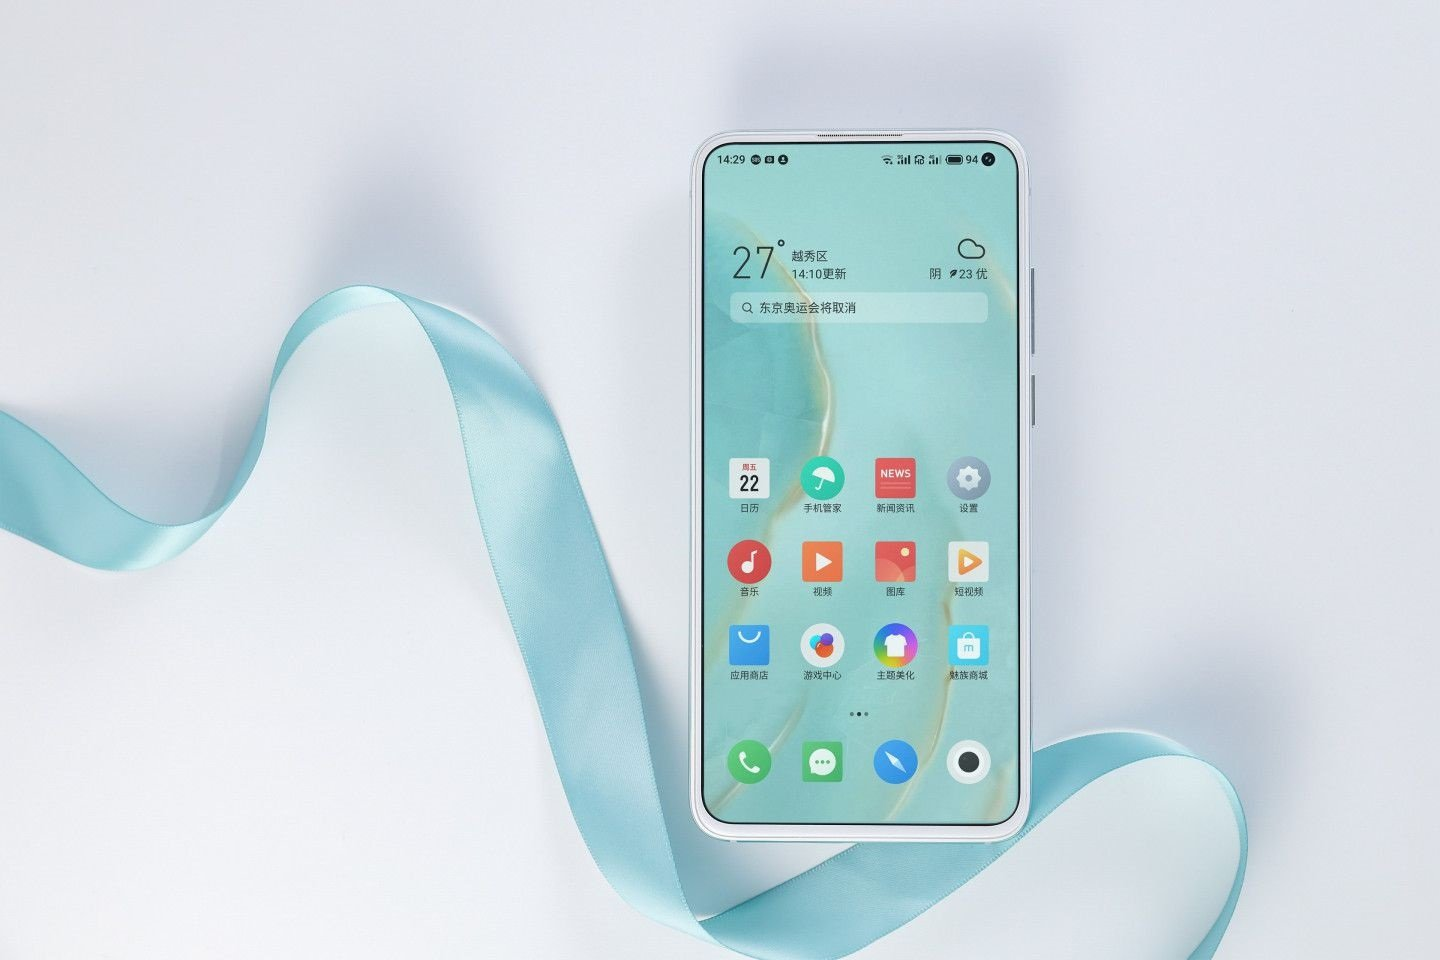 Meizu promises pure OS experience without any bloatware and advertisements on its smartphones